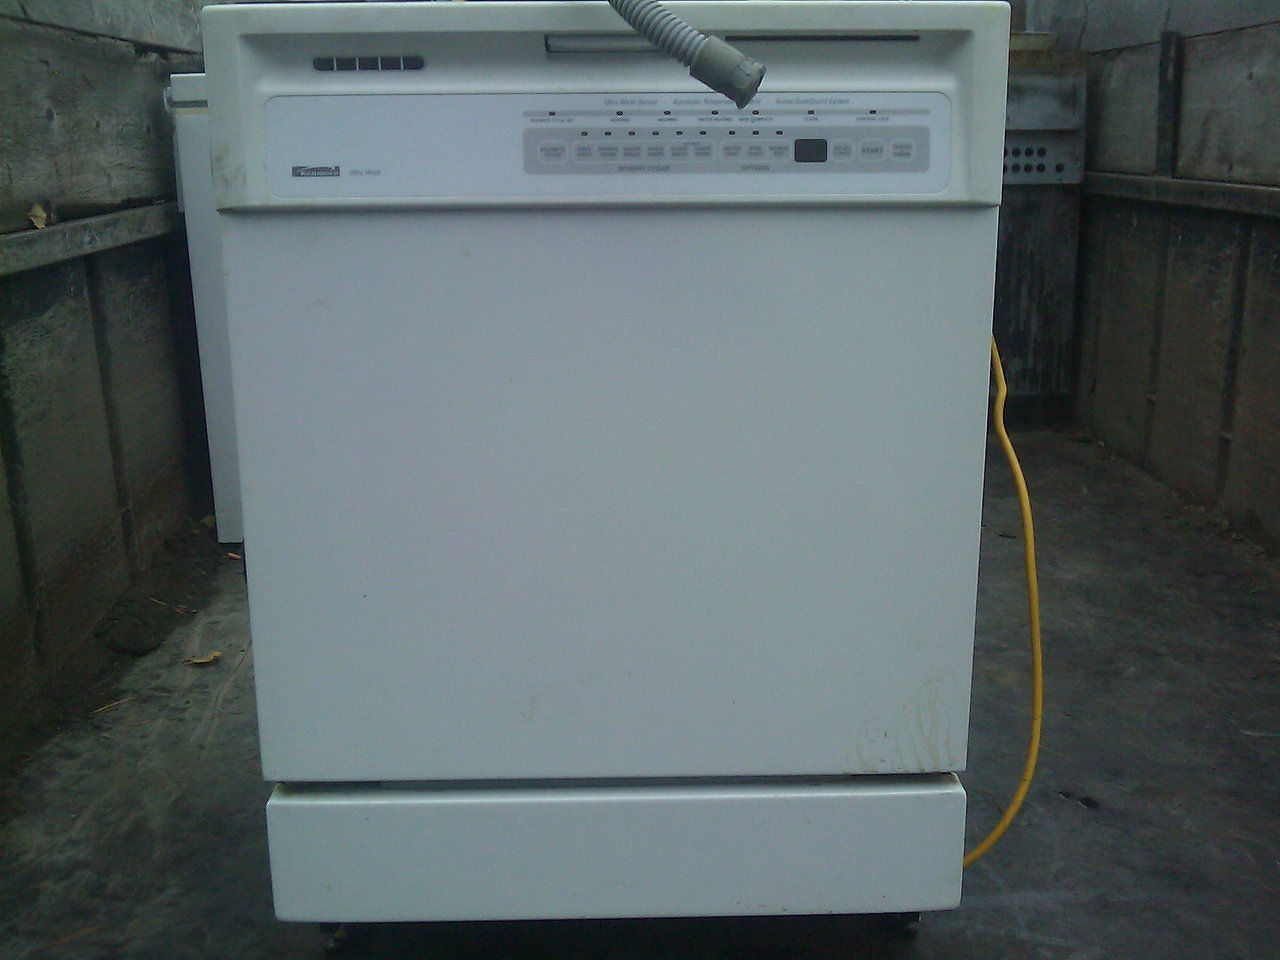 kenmore dishwasher model 665 manual